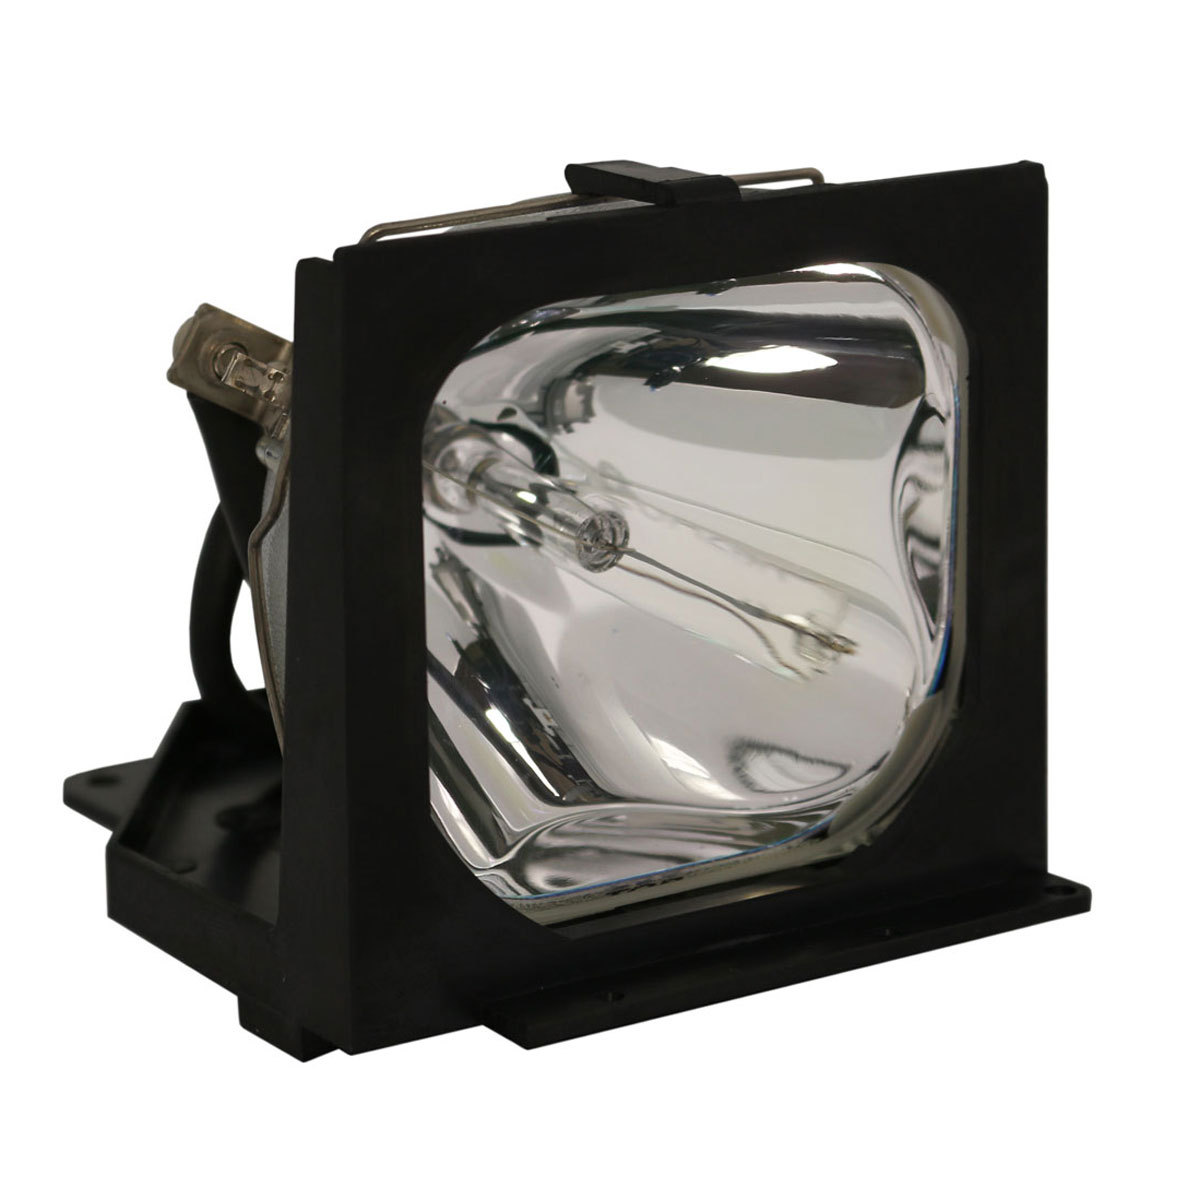 Primary image for Geha 60-200758 Osram Projector Lamp Module